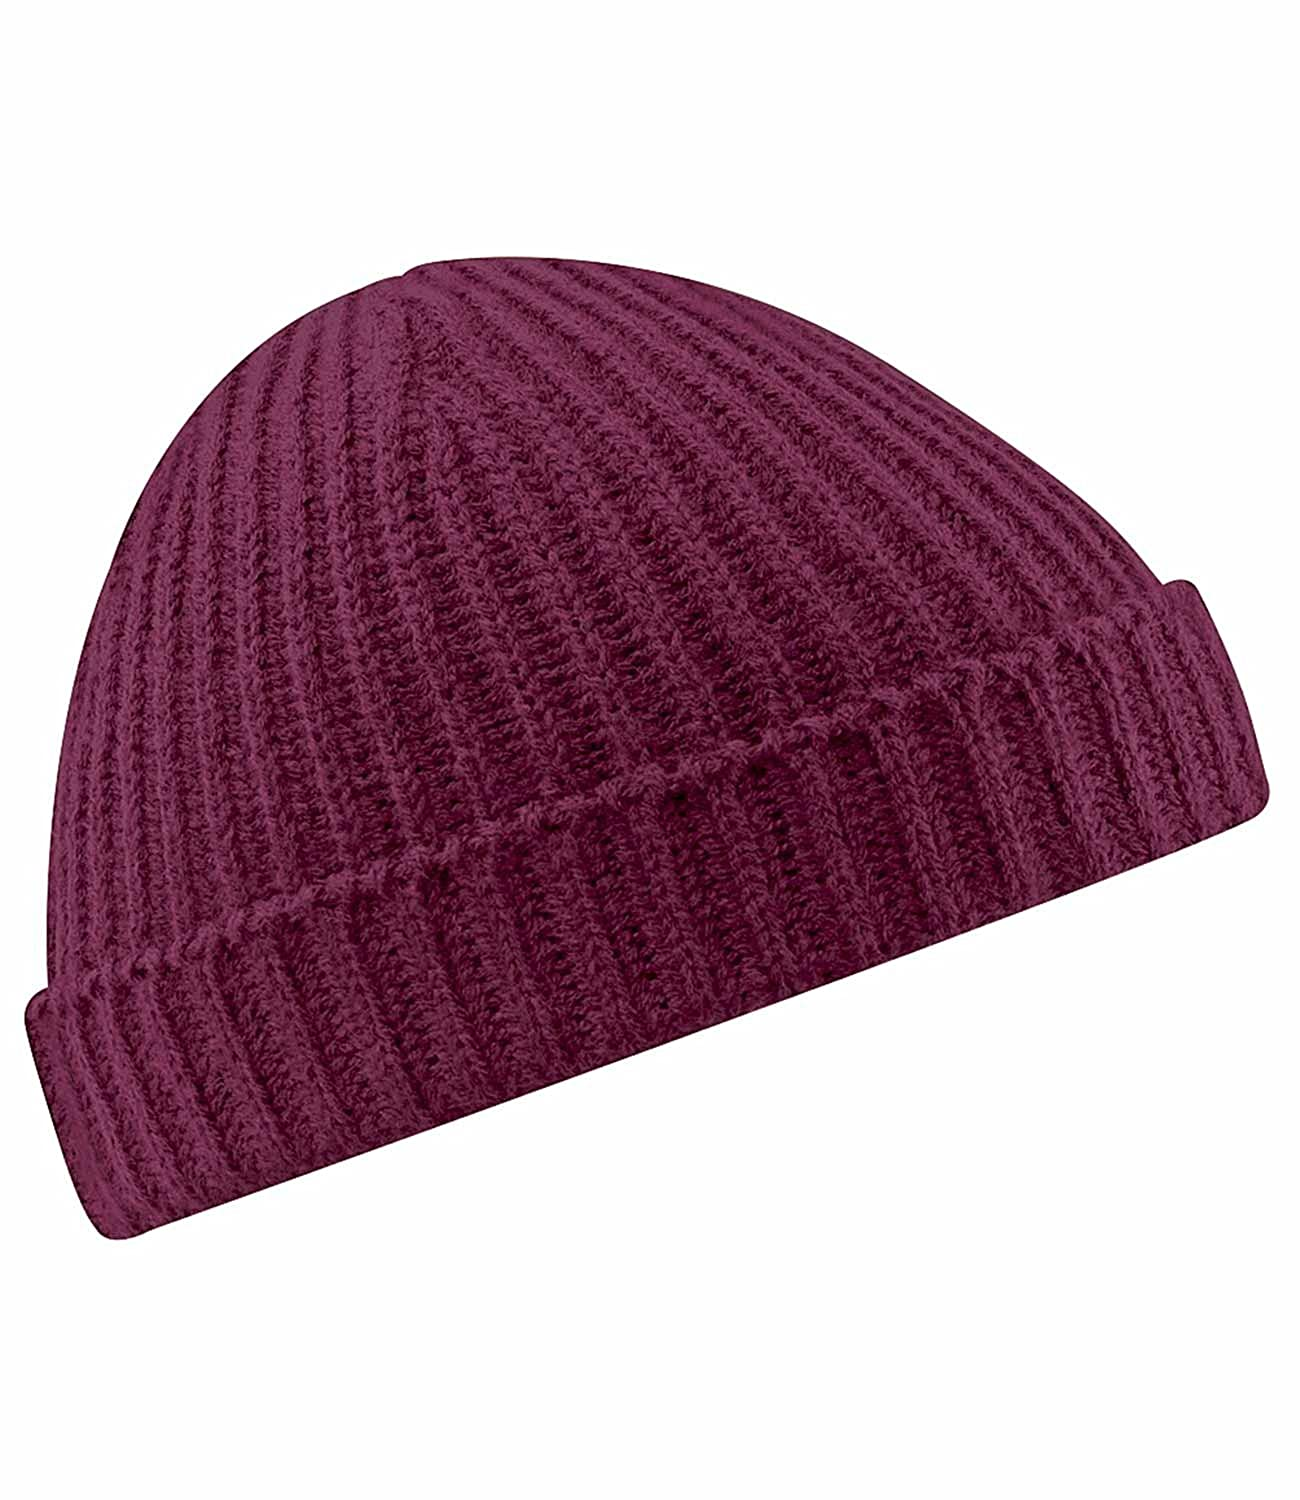 66988791eb1 Amazon.com  Beechfield Trawler beanie Black  Clothing